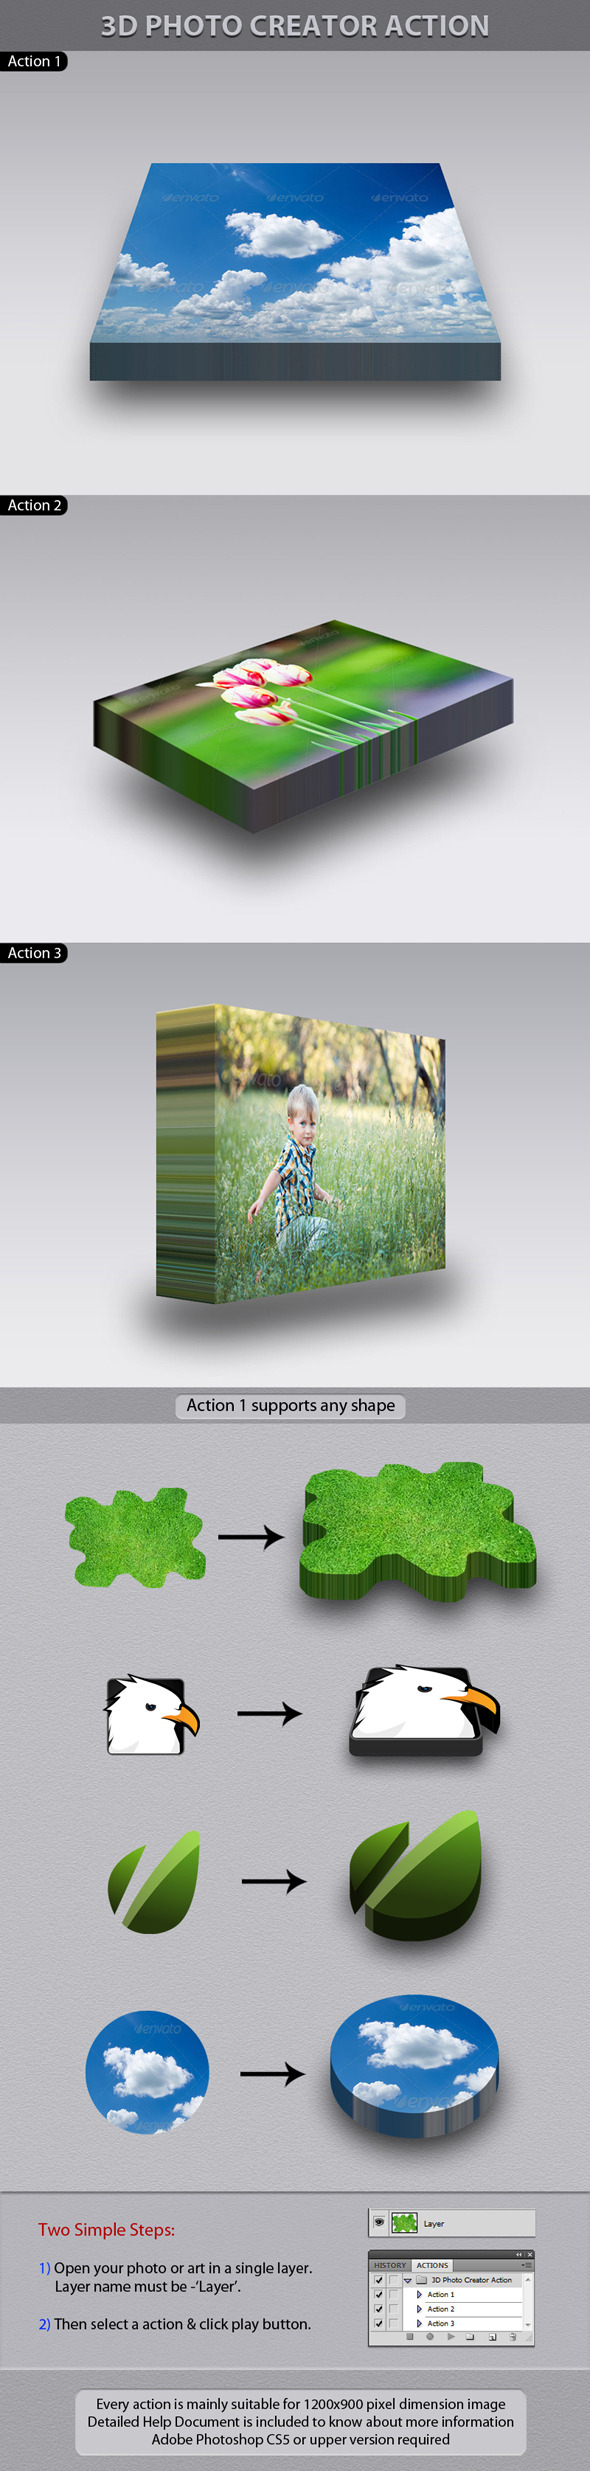 3D Photo Creator Action